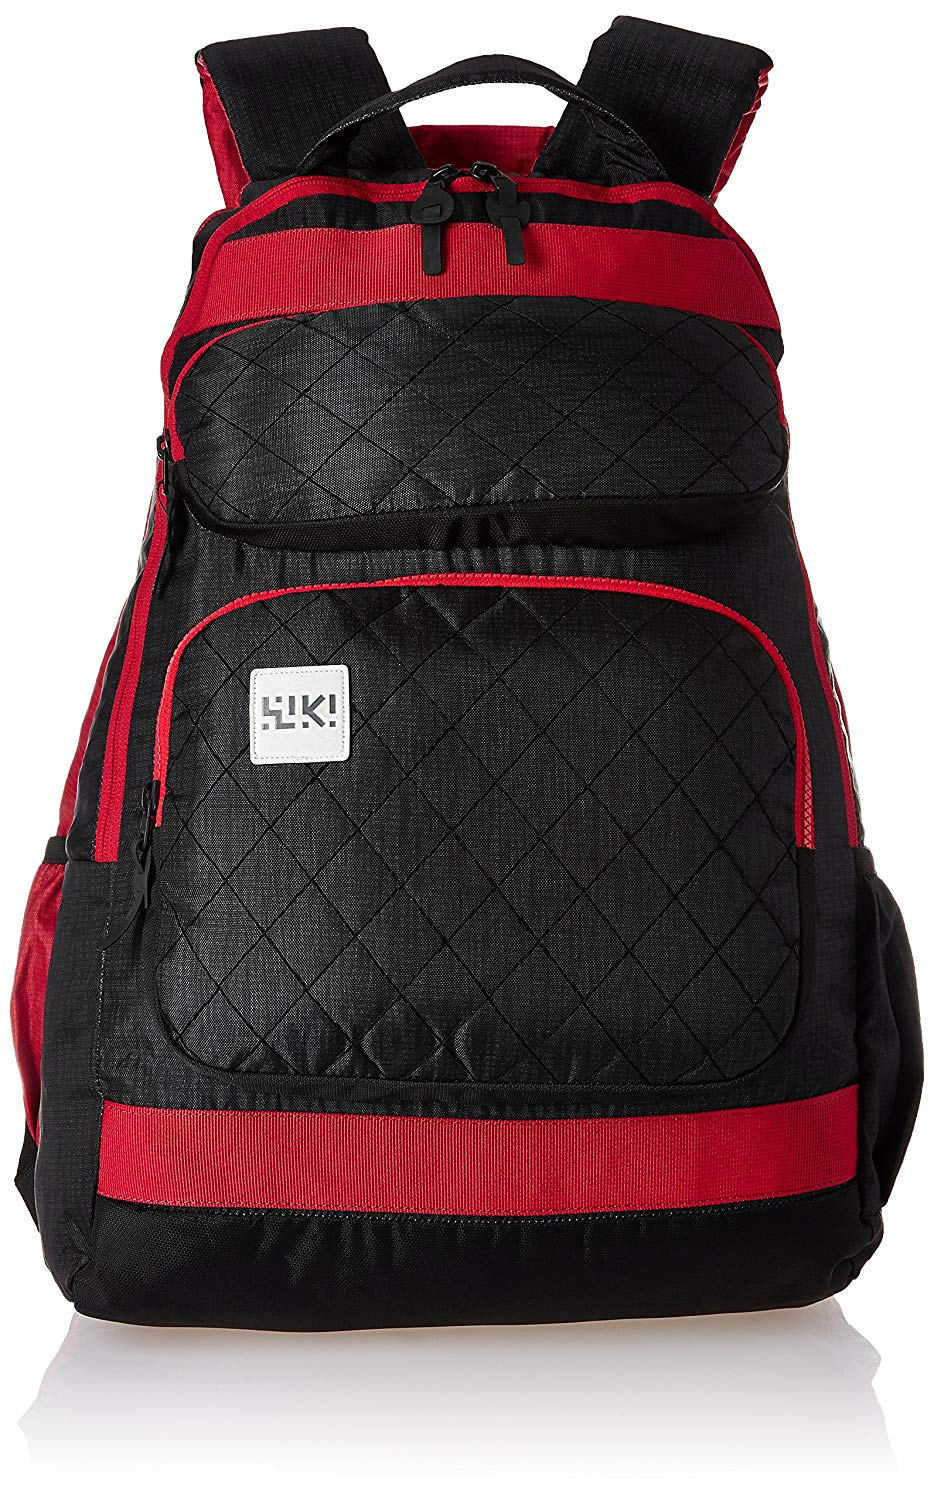 Wildcraft Toss Red/Black Reversible School Bag